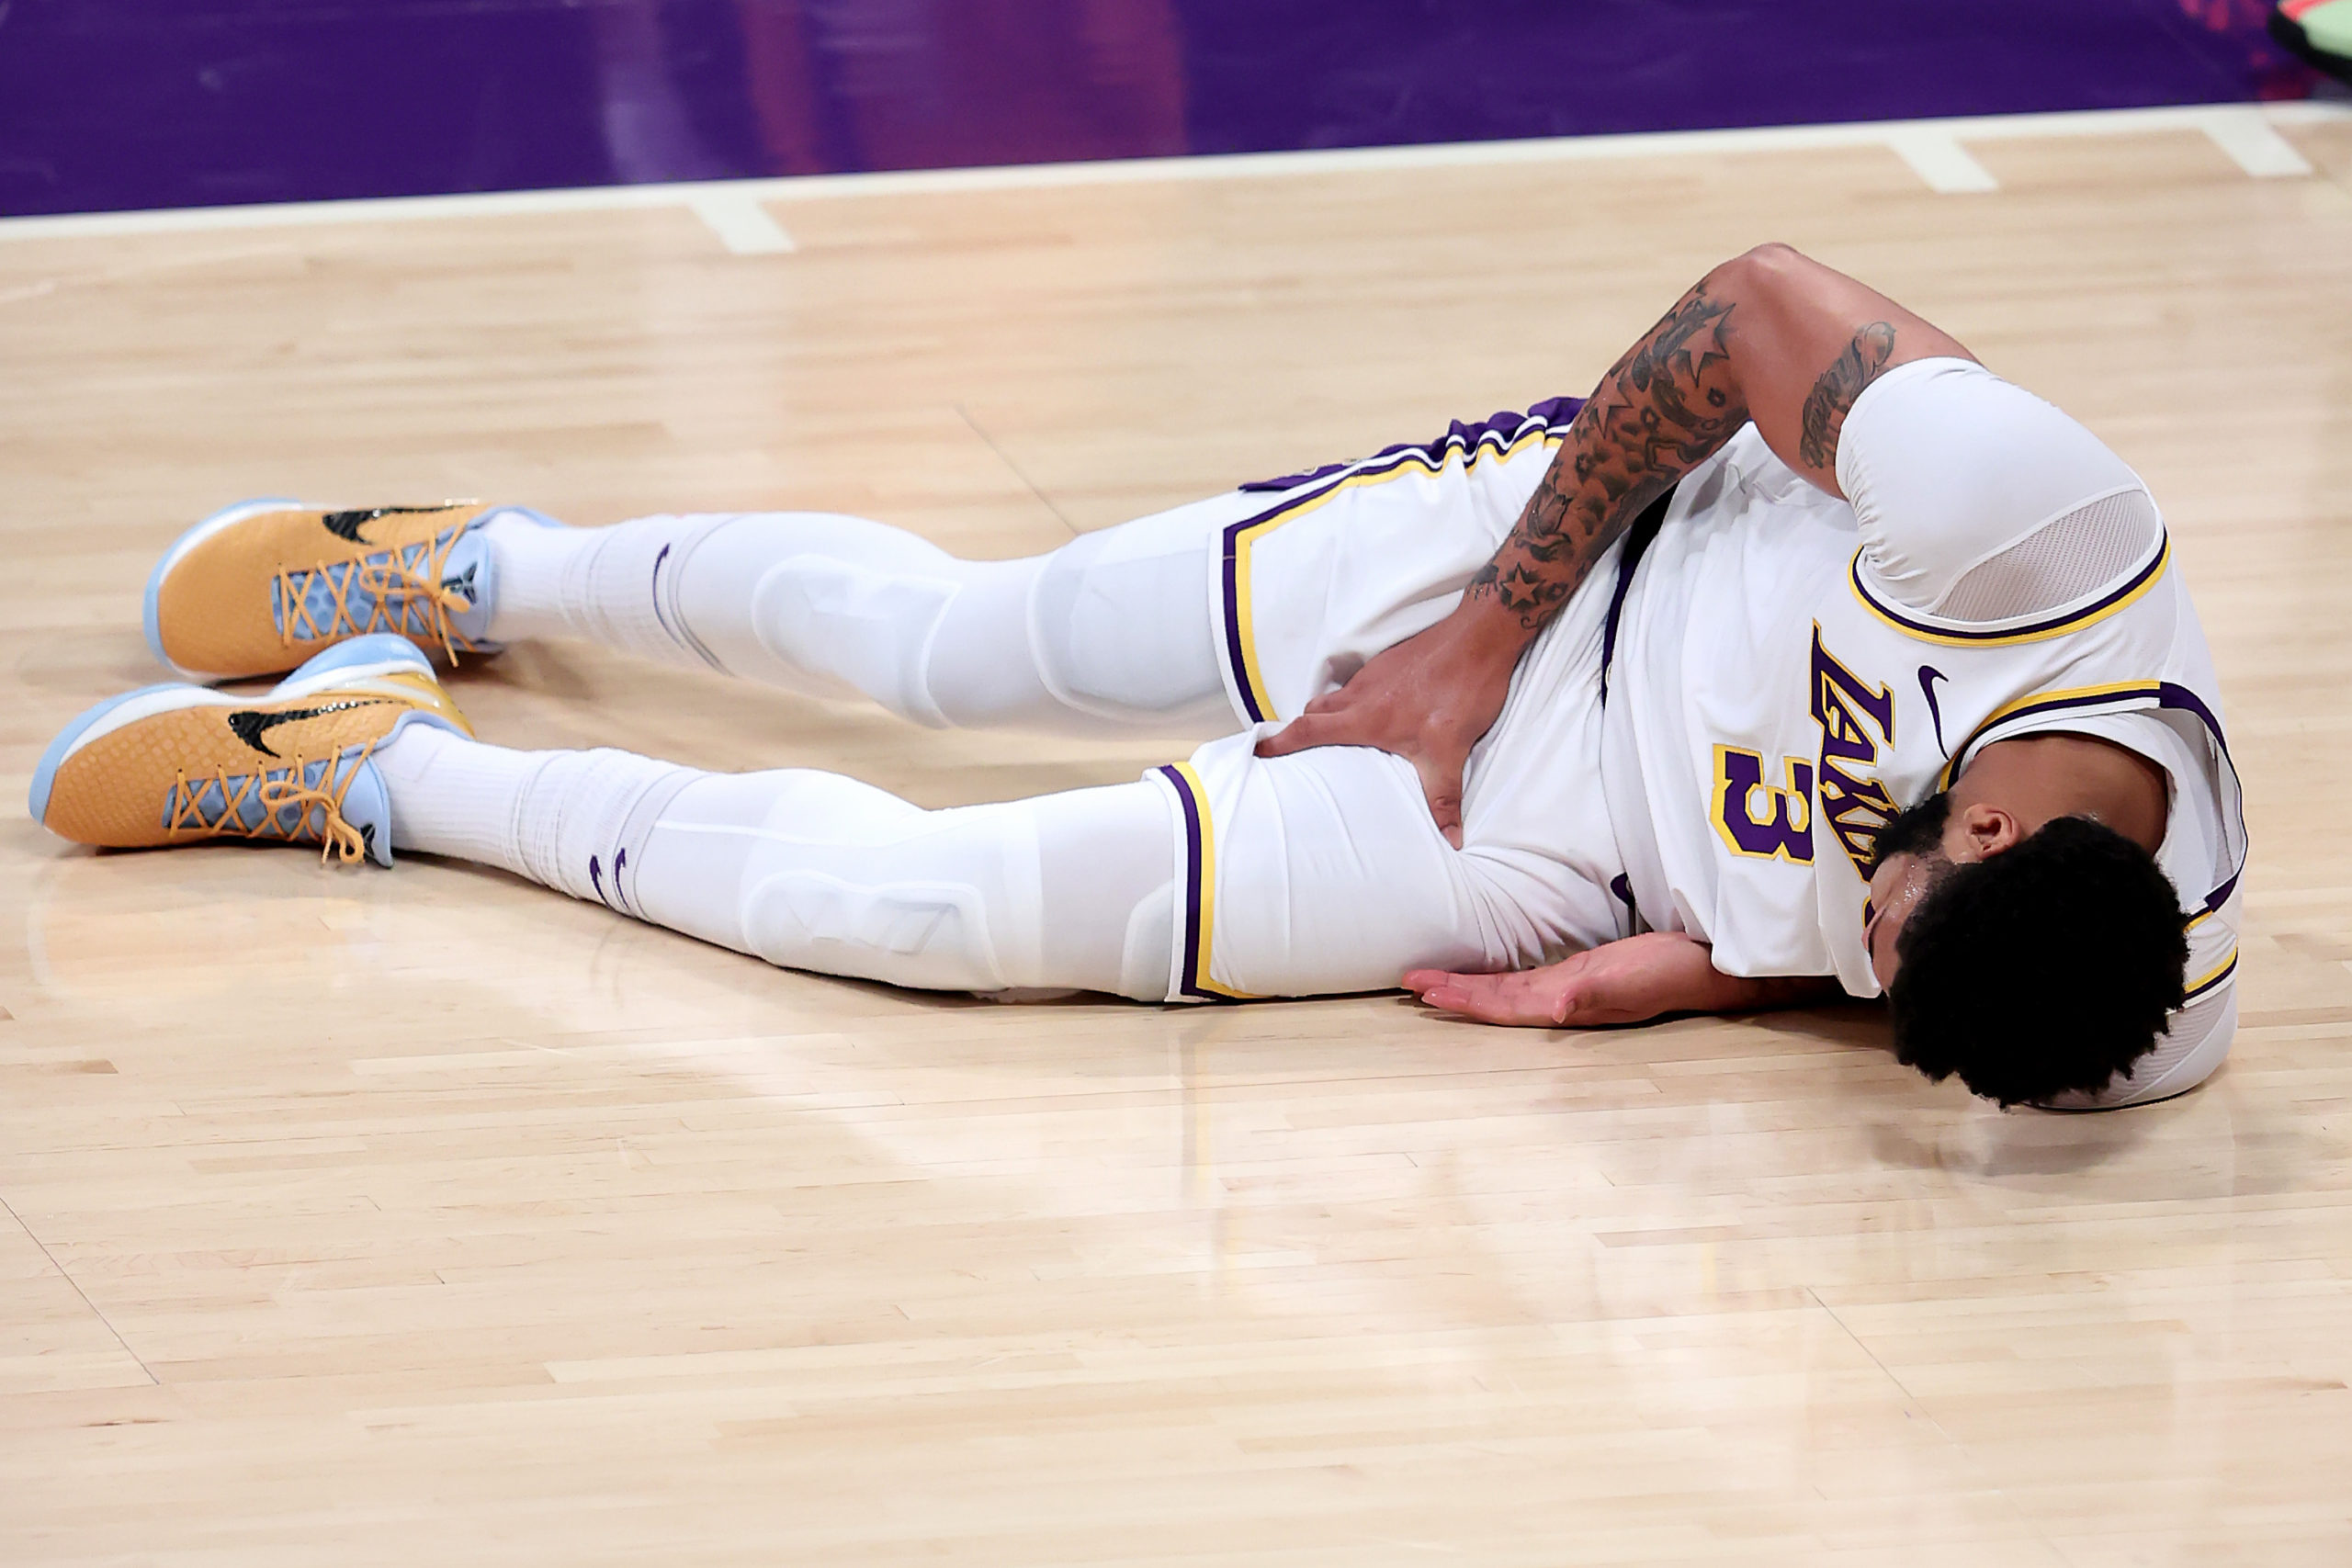 lakers-anthony-davis-exits-game-6-vs-suns-early-after-tense-groin-rupture.jpg